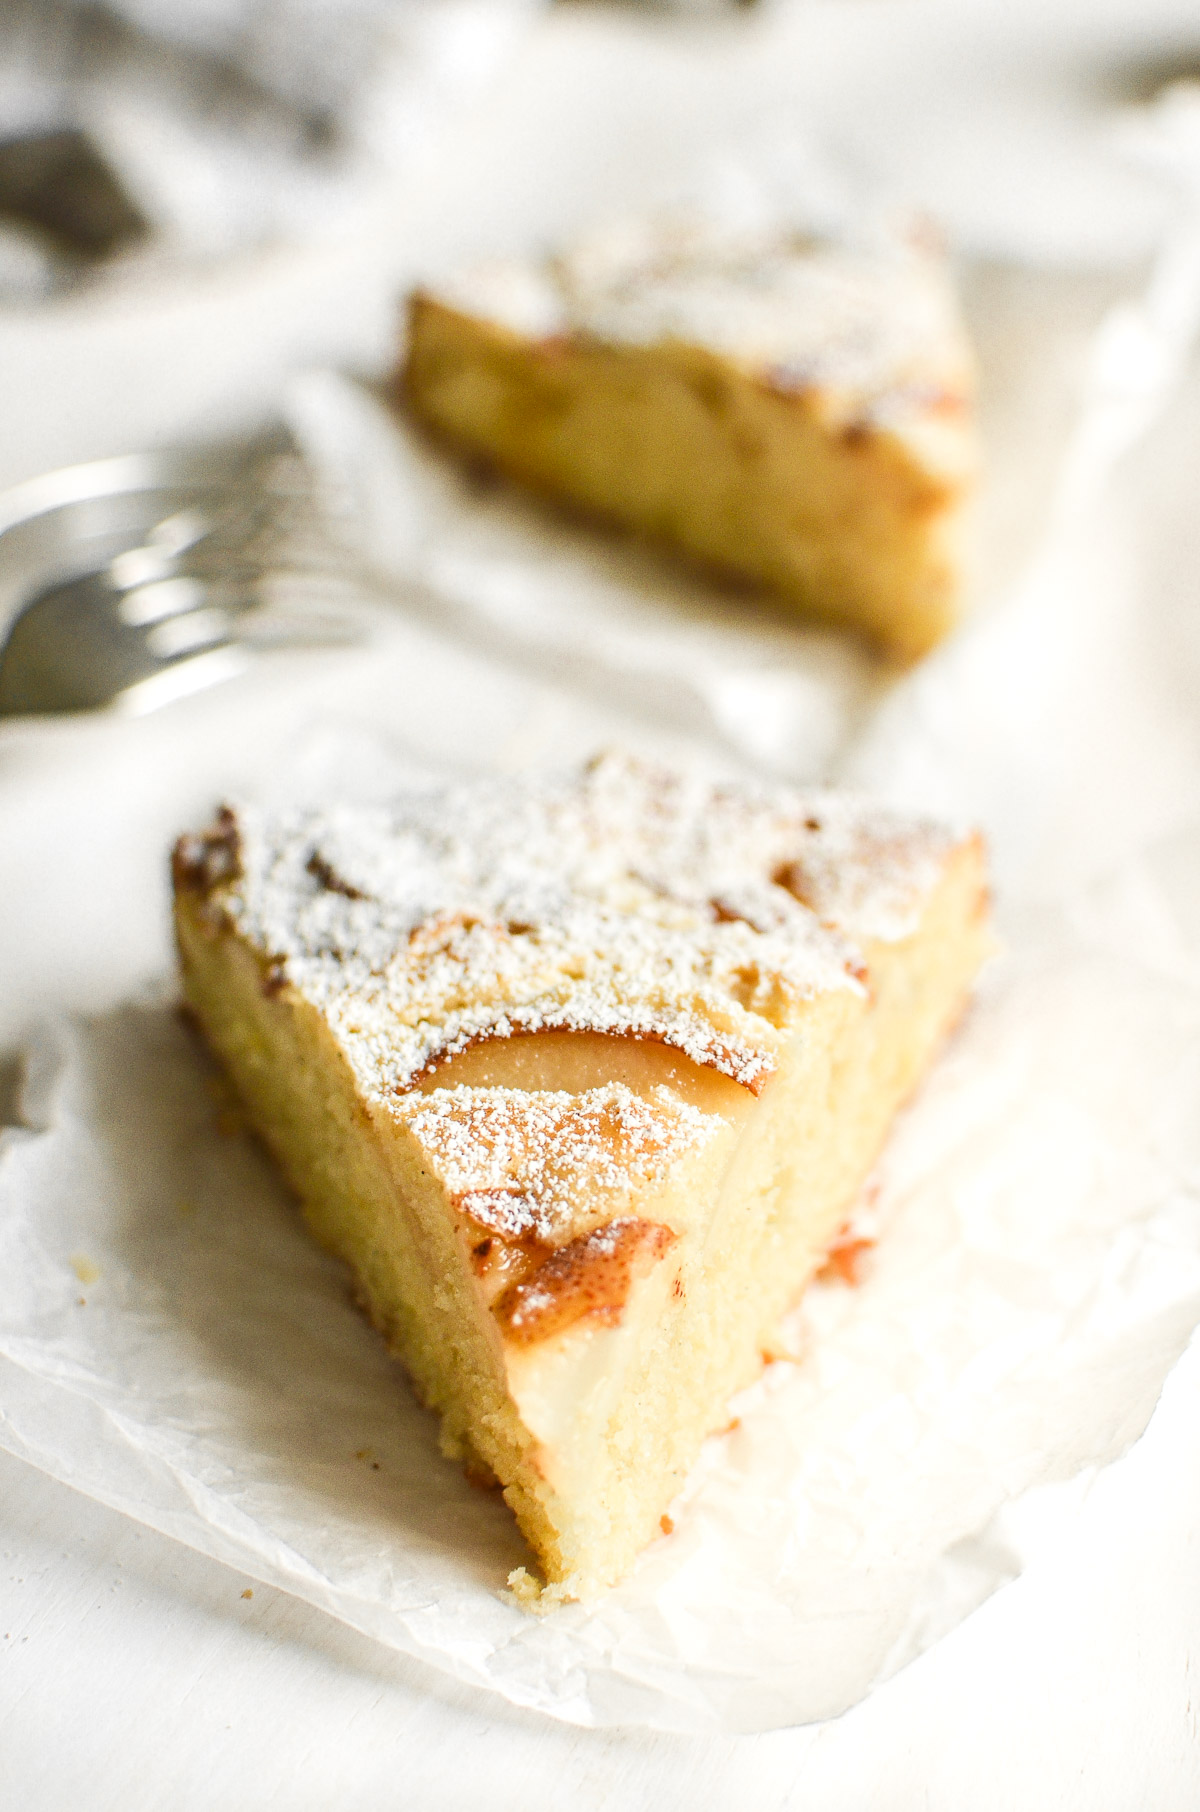 A slice of fresh ginger and pear cake, with another slice and forks in the background.